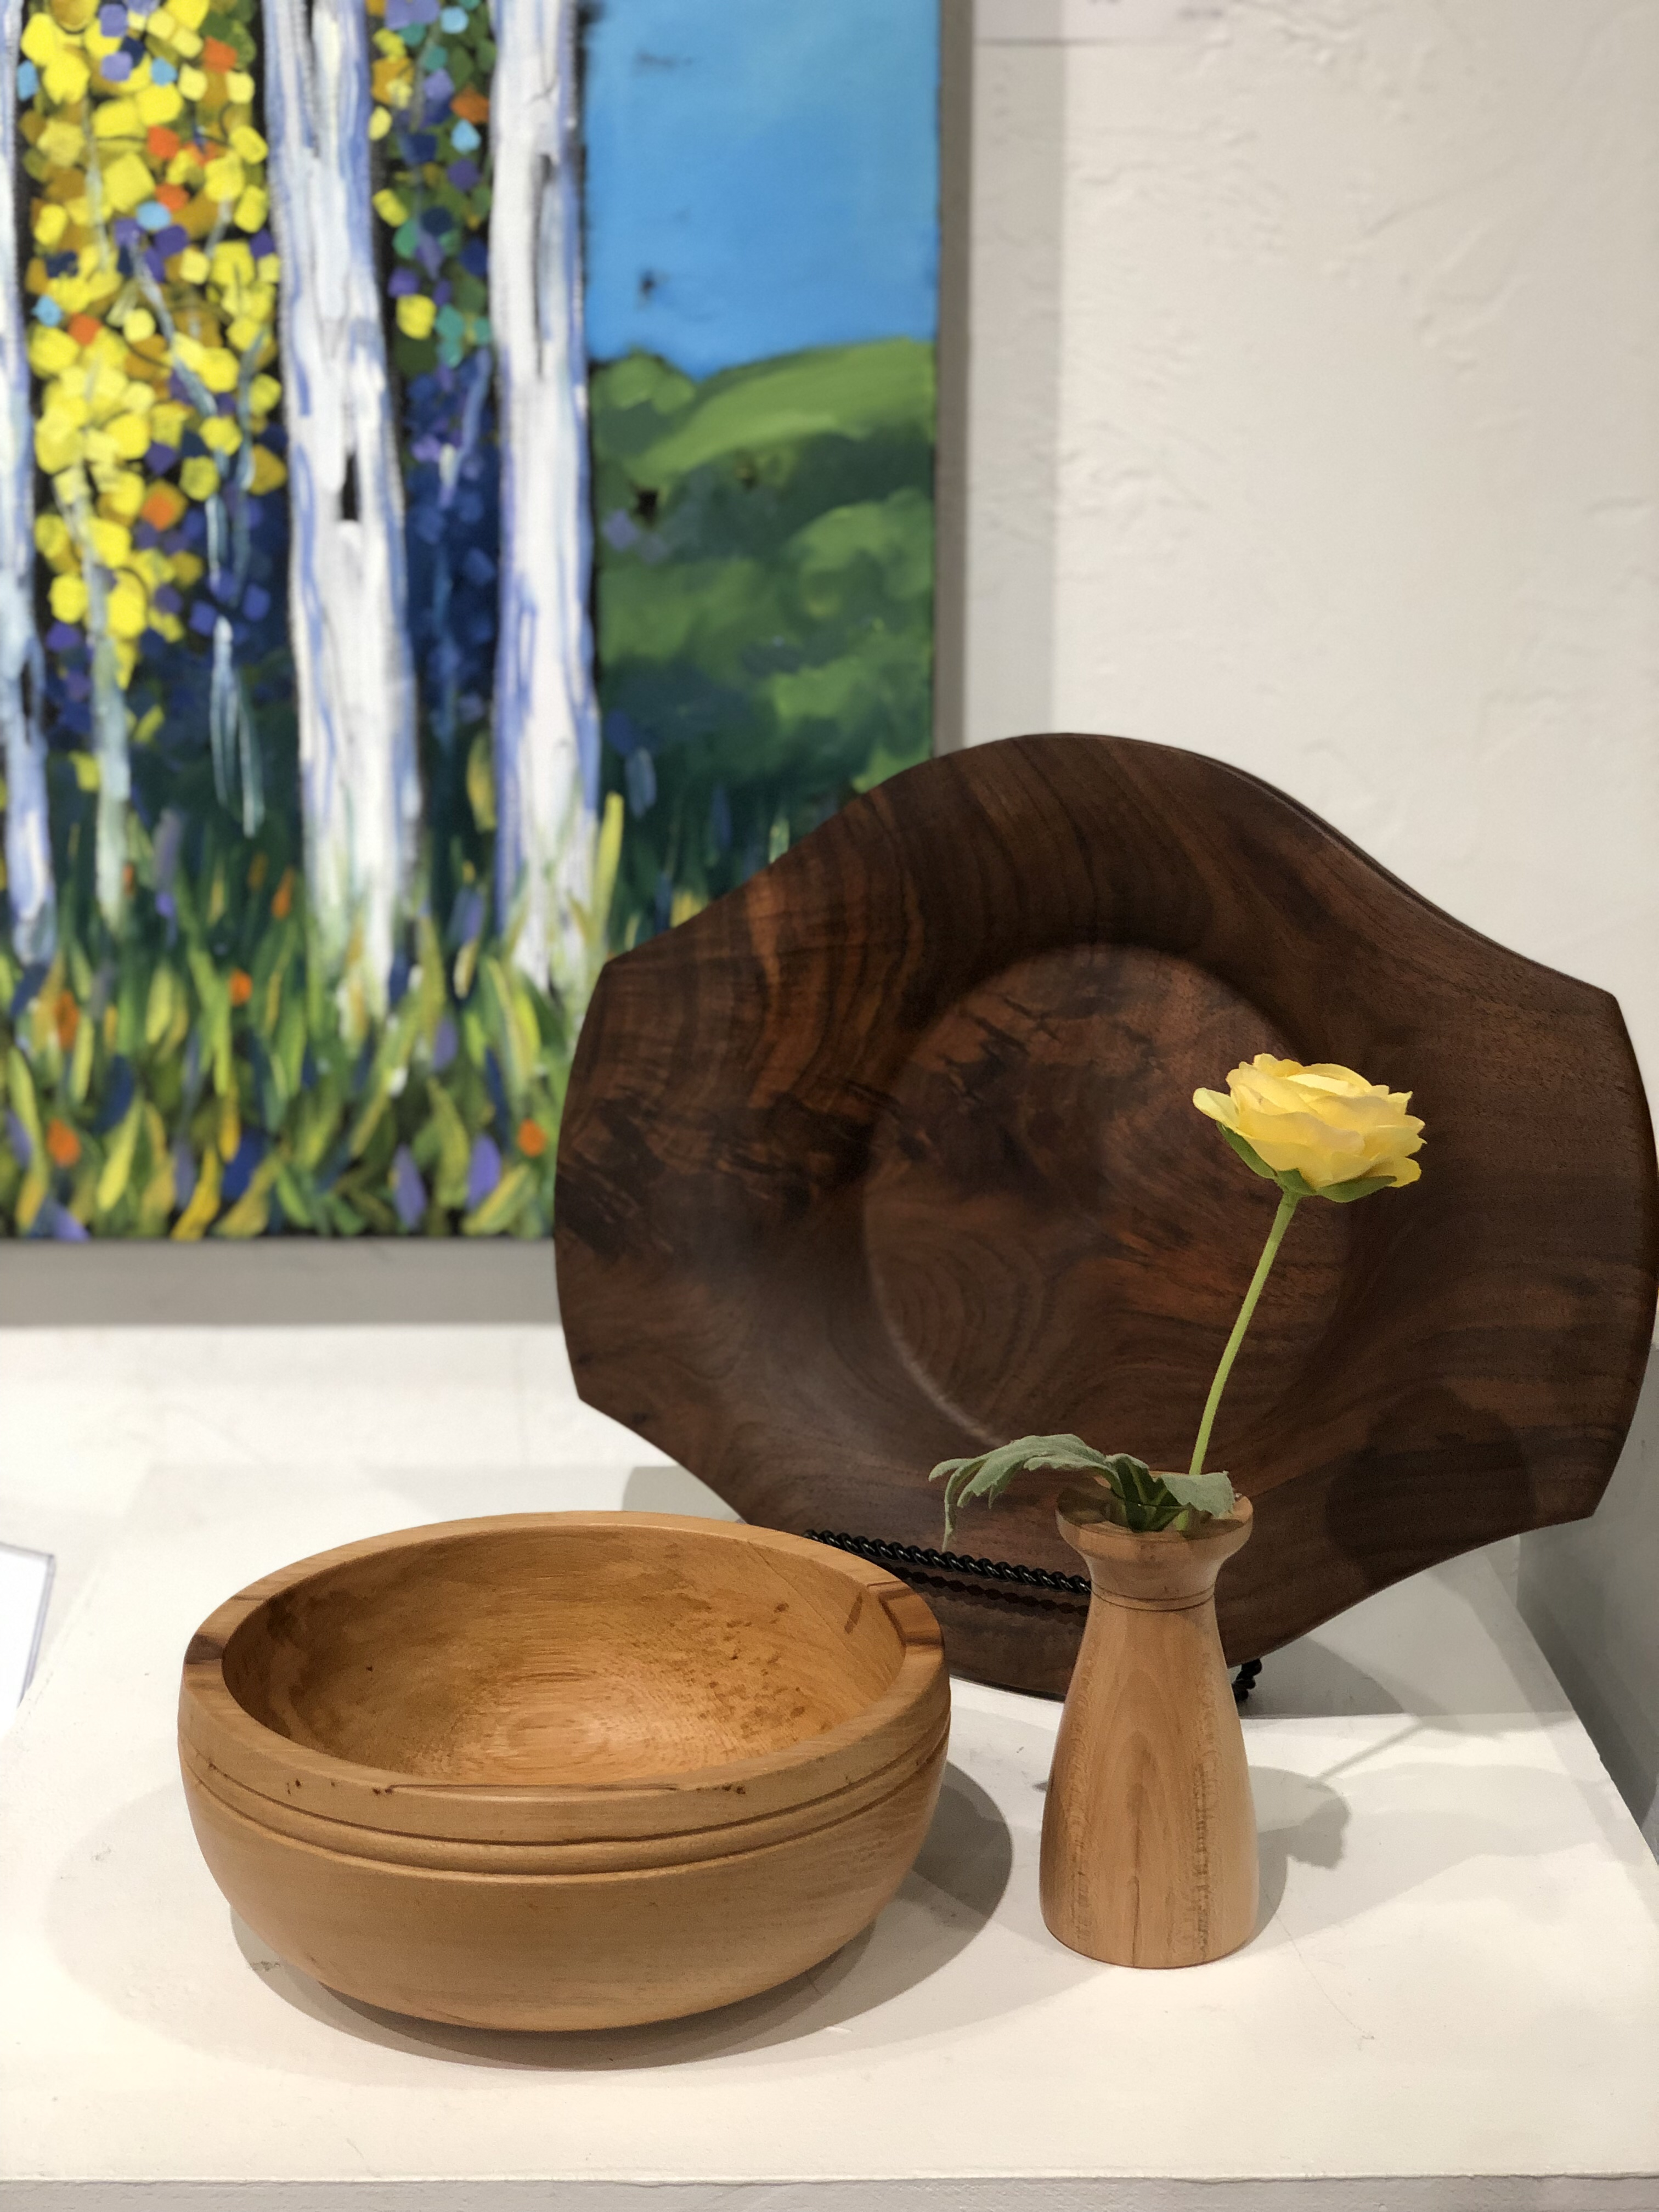 Wood serving bowls and bud vases